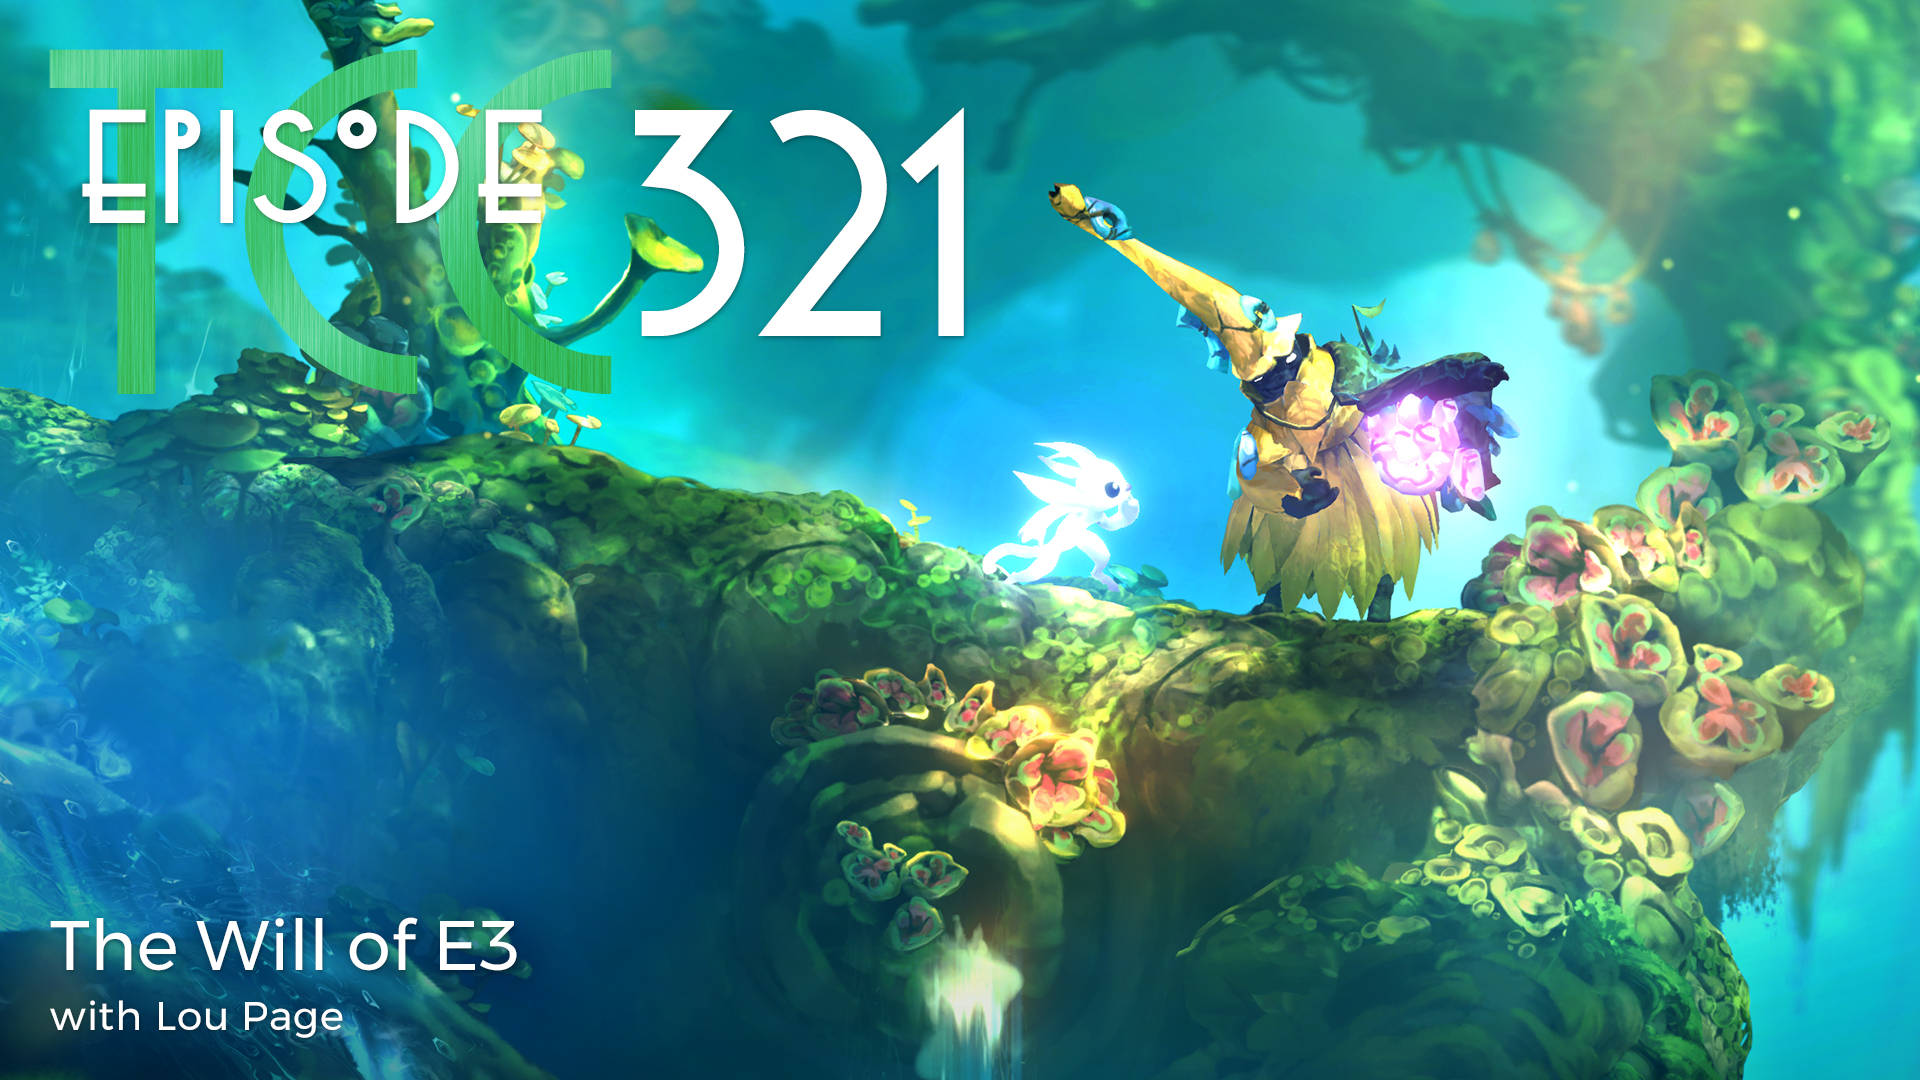 The Citadel Cafe 321: The Will of E3